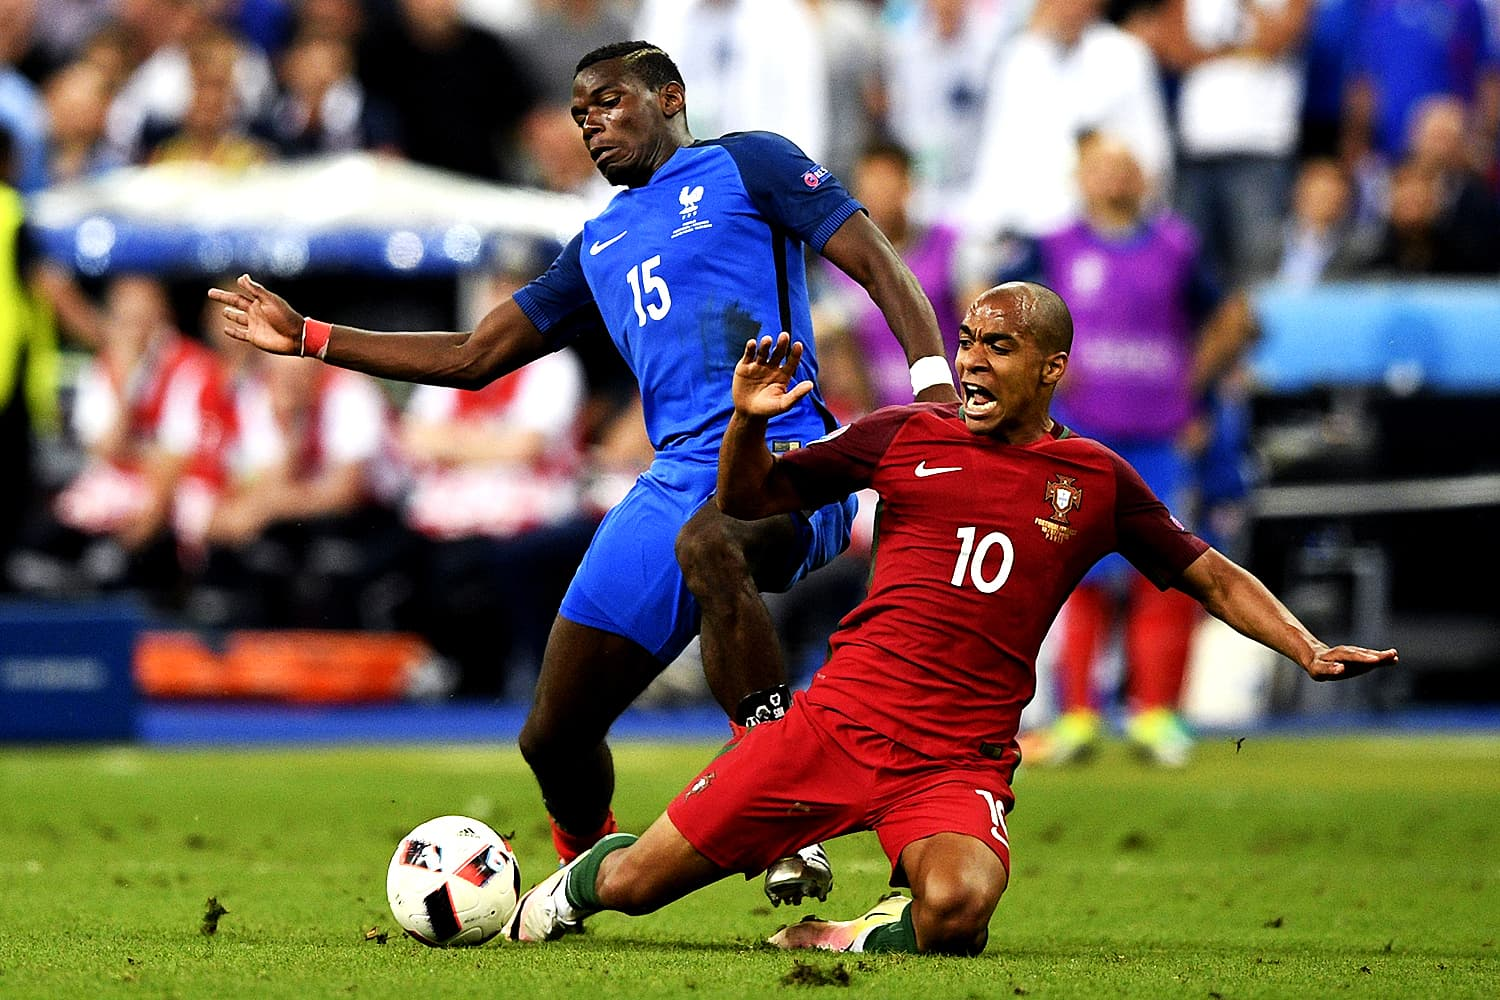 France's midfielder Paul Pogba (L) vies for the ball against Portugal's midfielder Joao Mario during the Euro 2016 final football match between France and Portugal at the Stade de France in Saint-Denis. — AFP